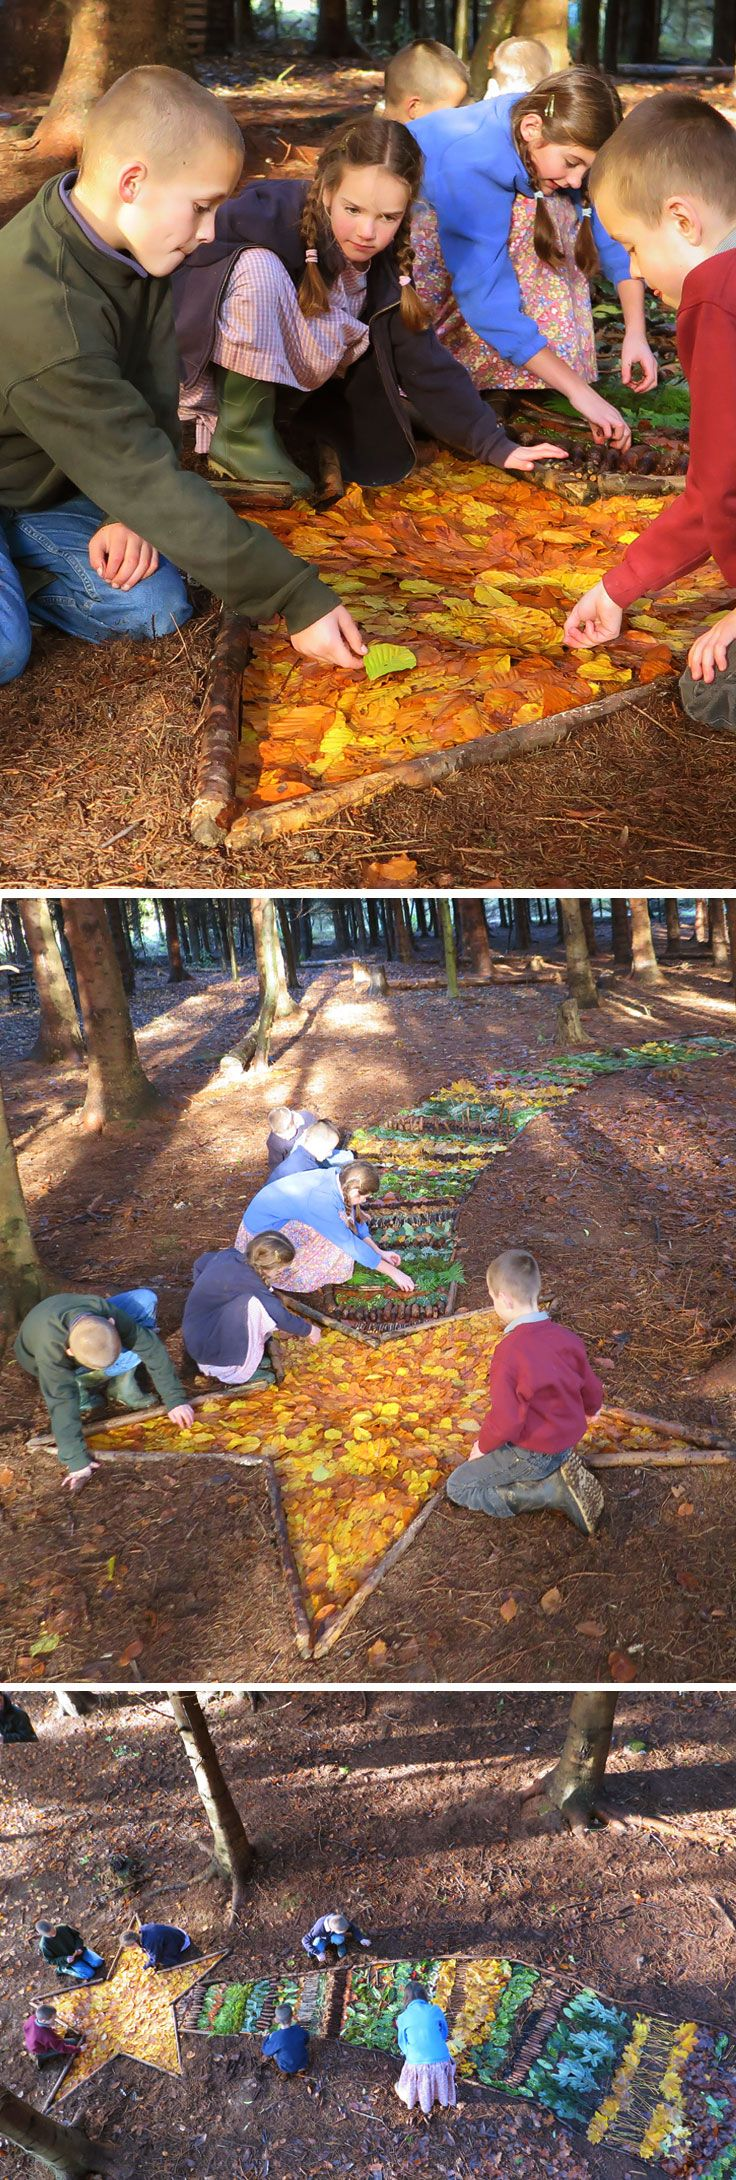 Look what these children made with just sticks and leaves! What a great way to take creativity outdoors.Nx